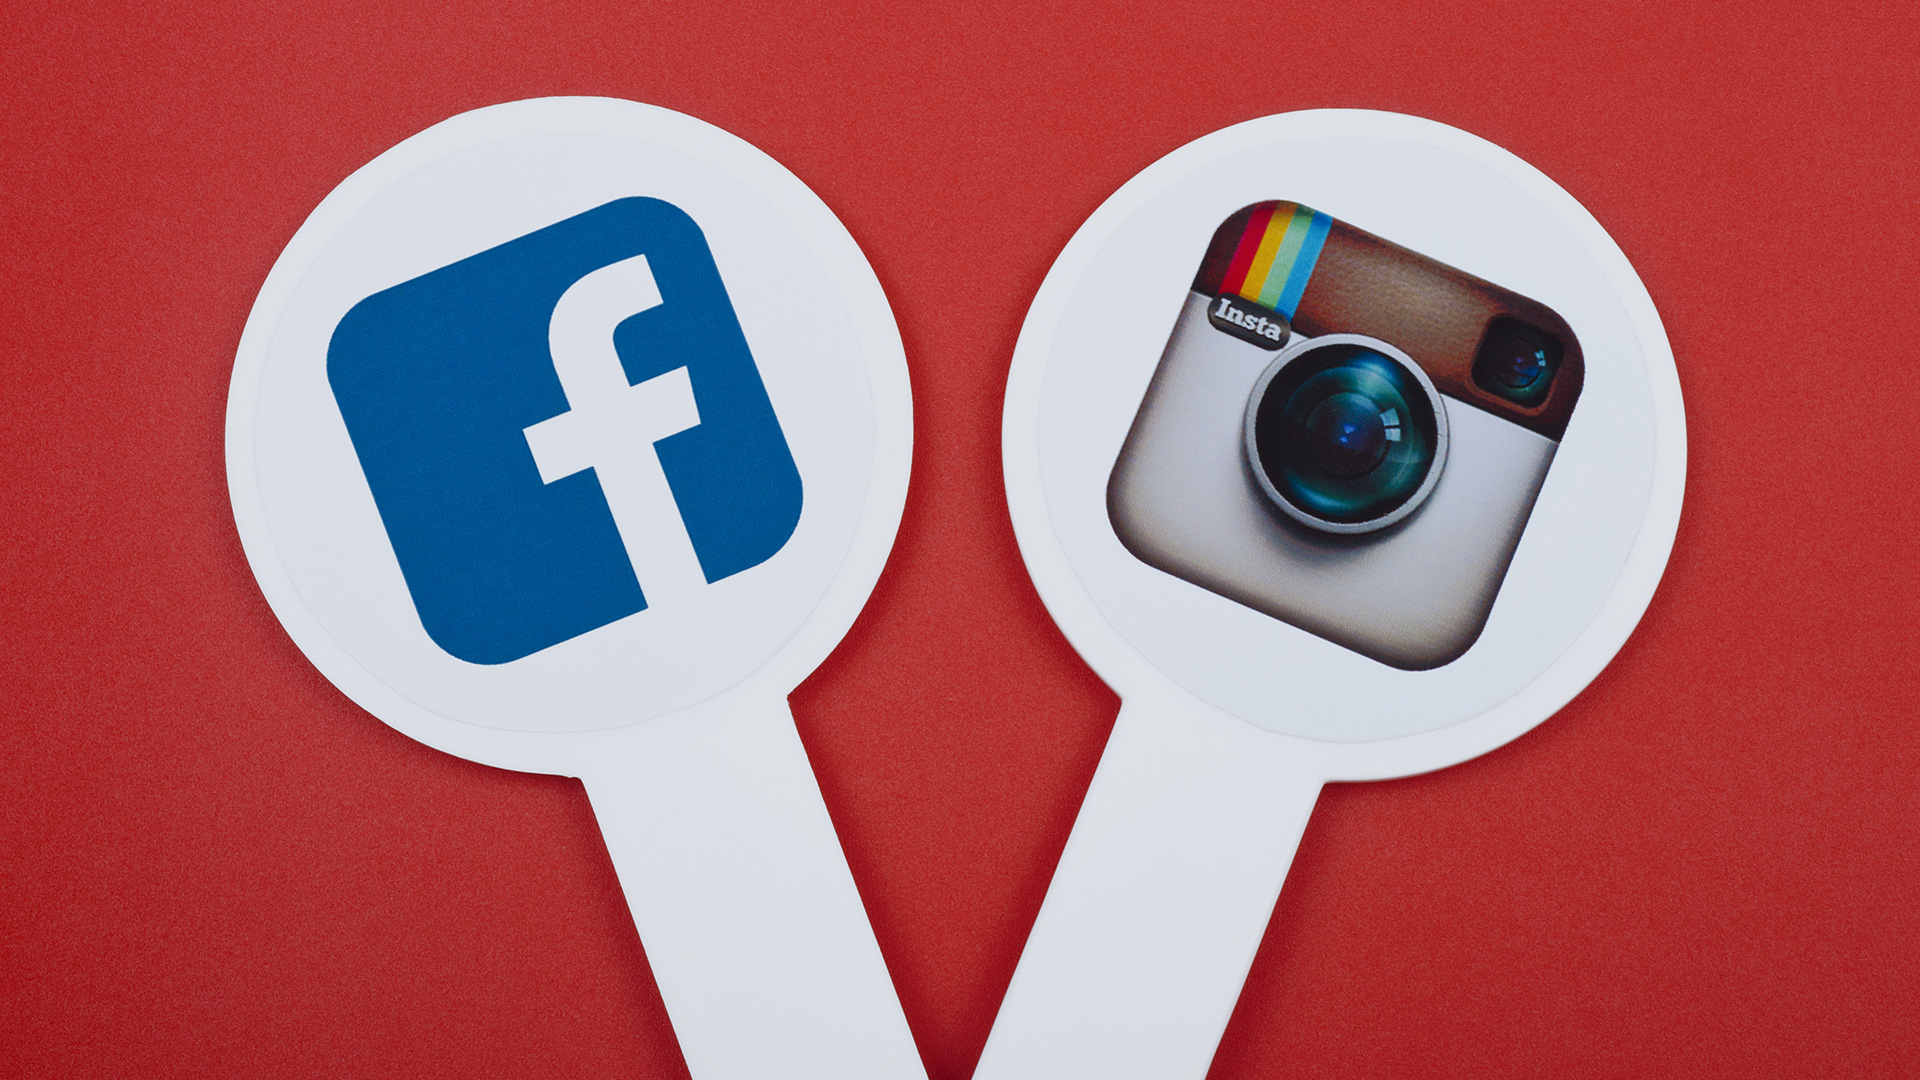 Change your Facebook and Instagram passwords